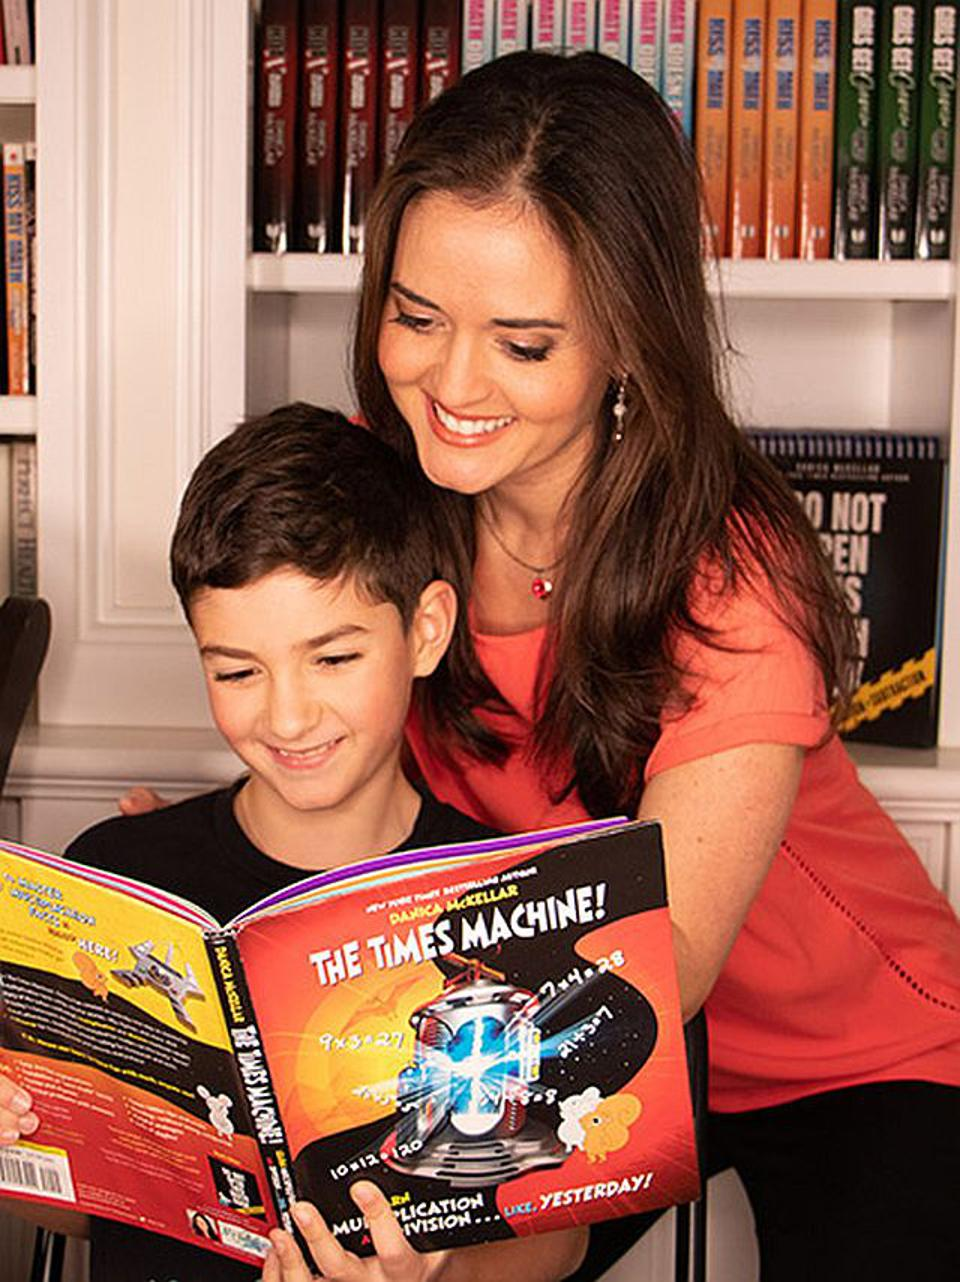 Danica McKellar, author of ″The Times Machine,″ teaches a revolutionary and FUN way to memorize multiplication facts.